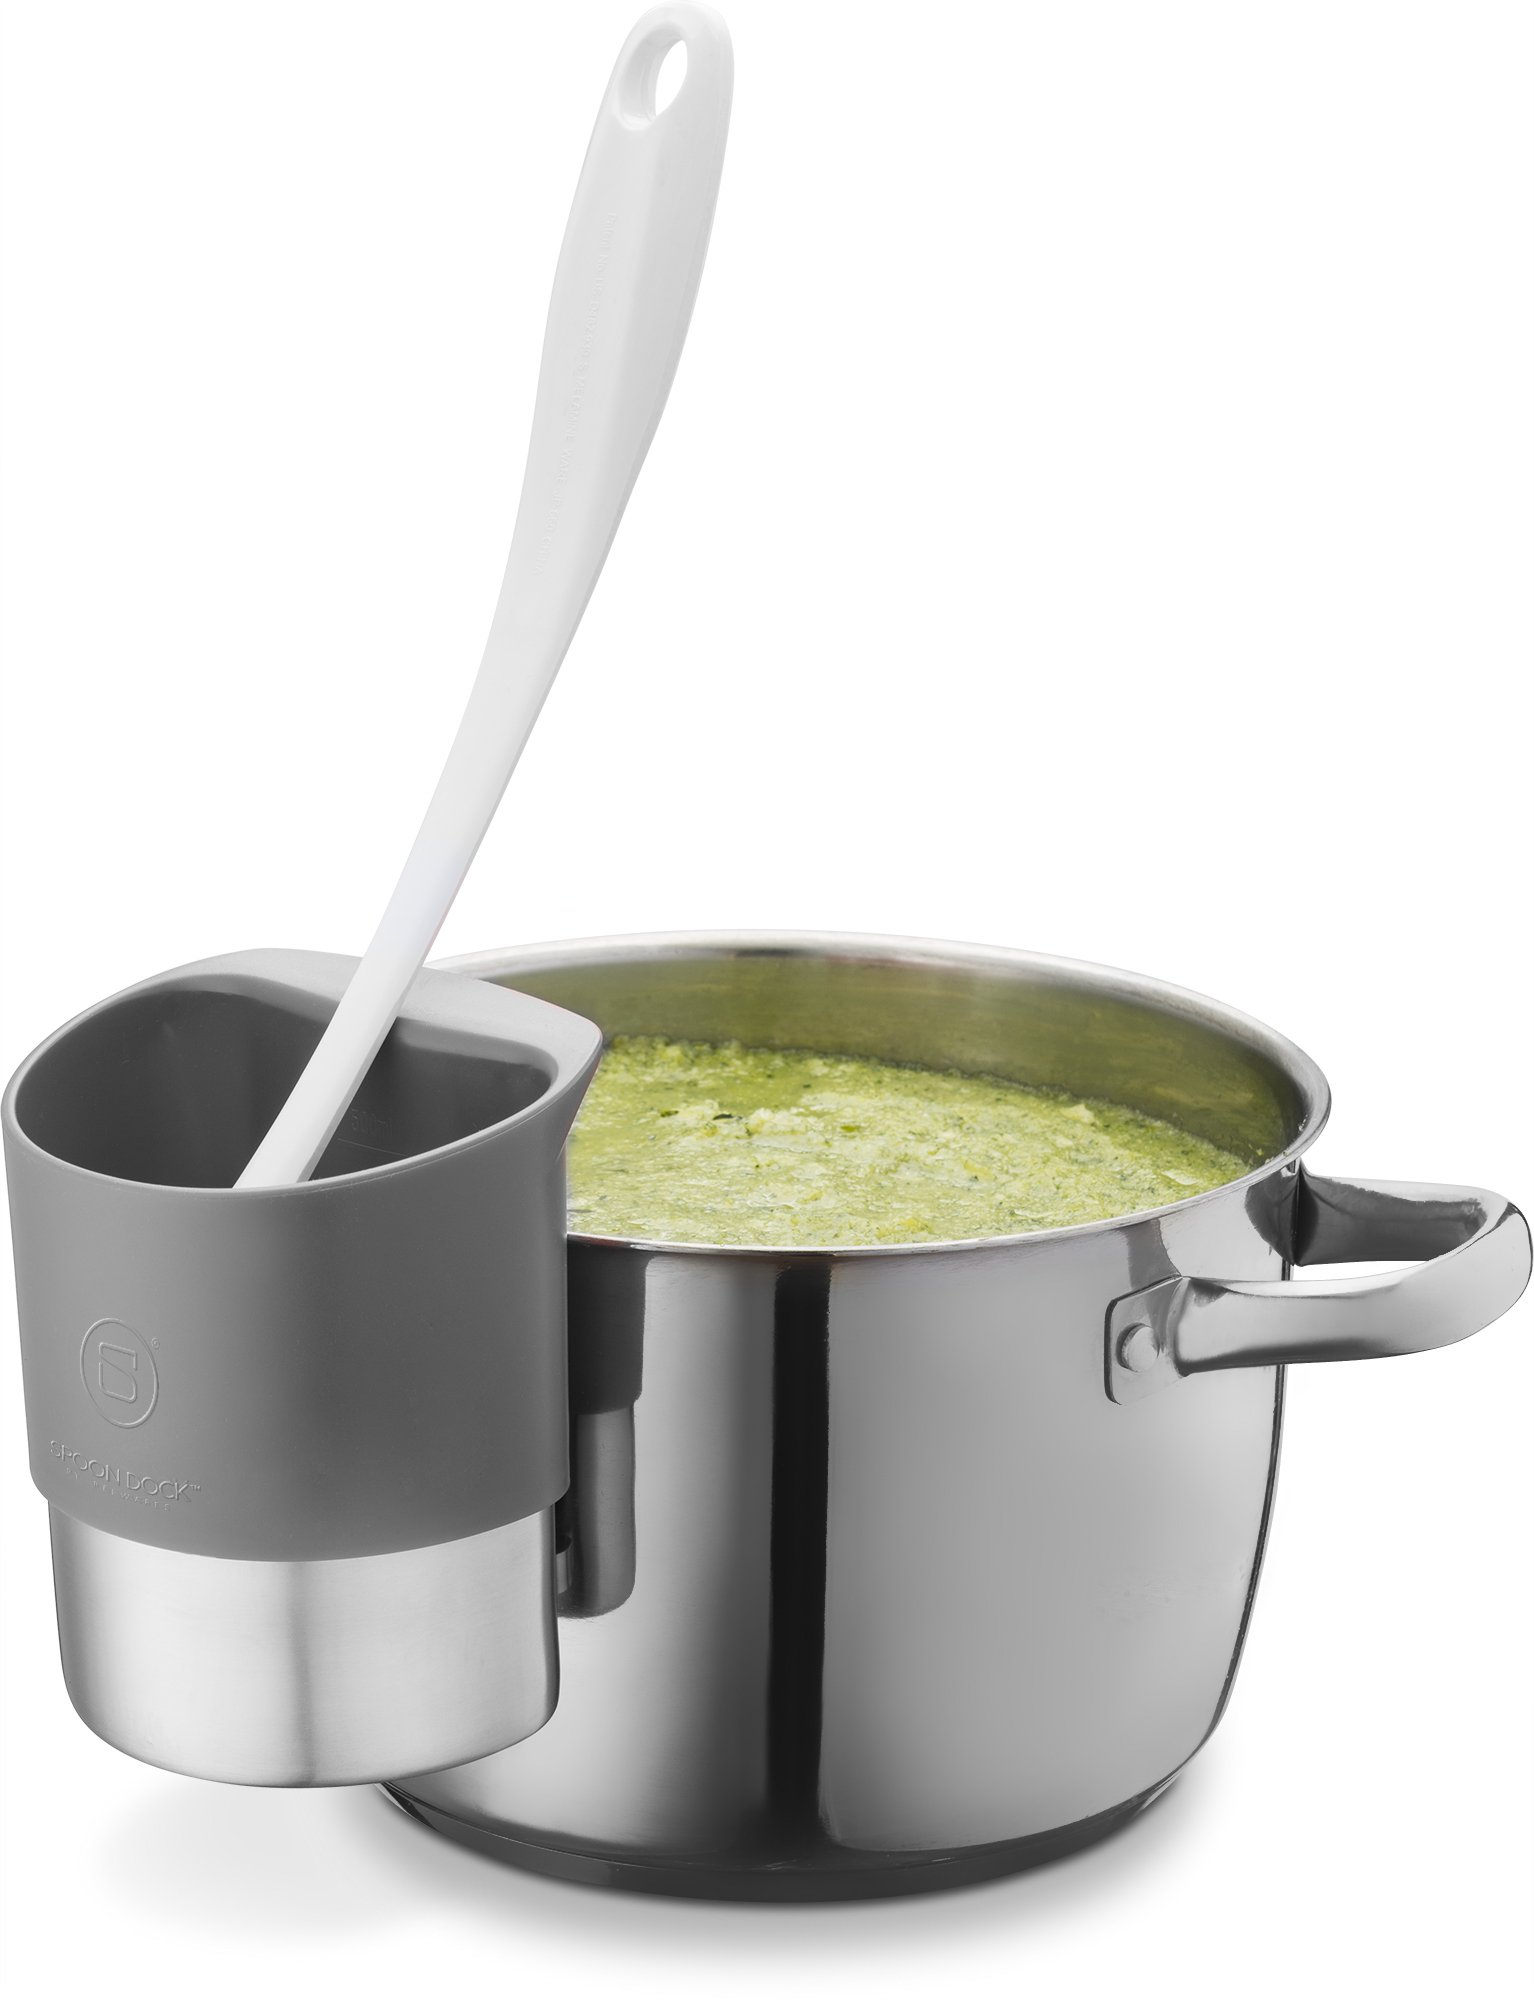 Spoon rest Stainless Steel Spoon Dock for Utensils - This Cup Hangs on Saucepans and Pots for Preparing and Serving Food Without Creating a Mess - Use as a Measuring Cup, Mix, Pouring … (Grey) by Belwares